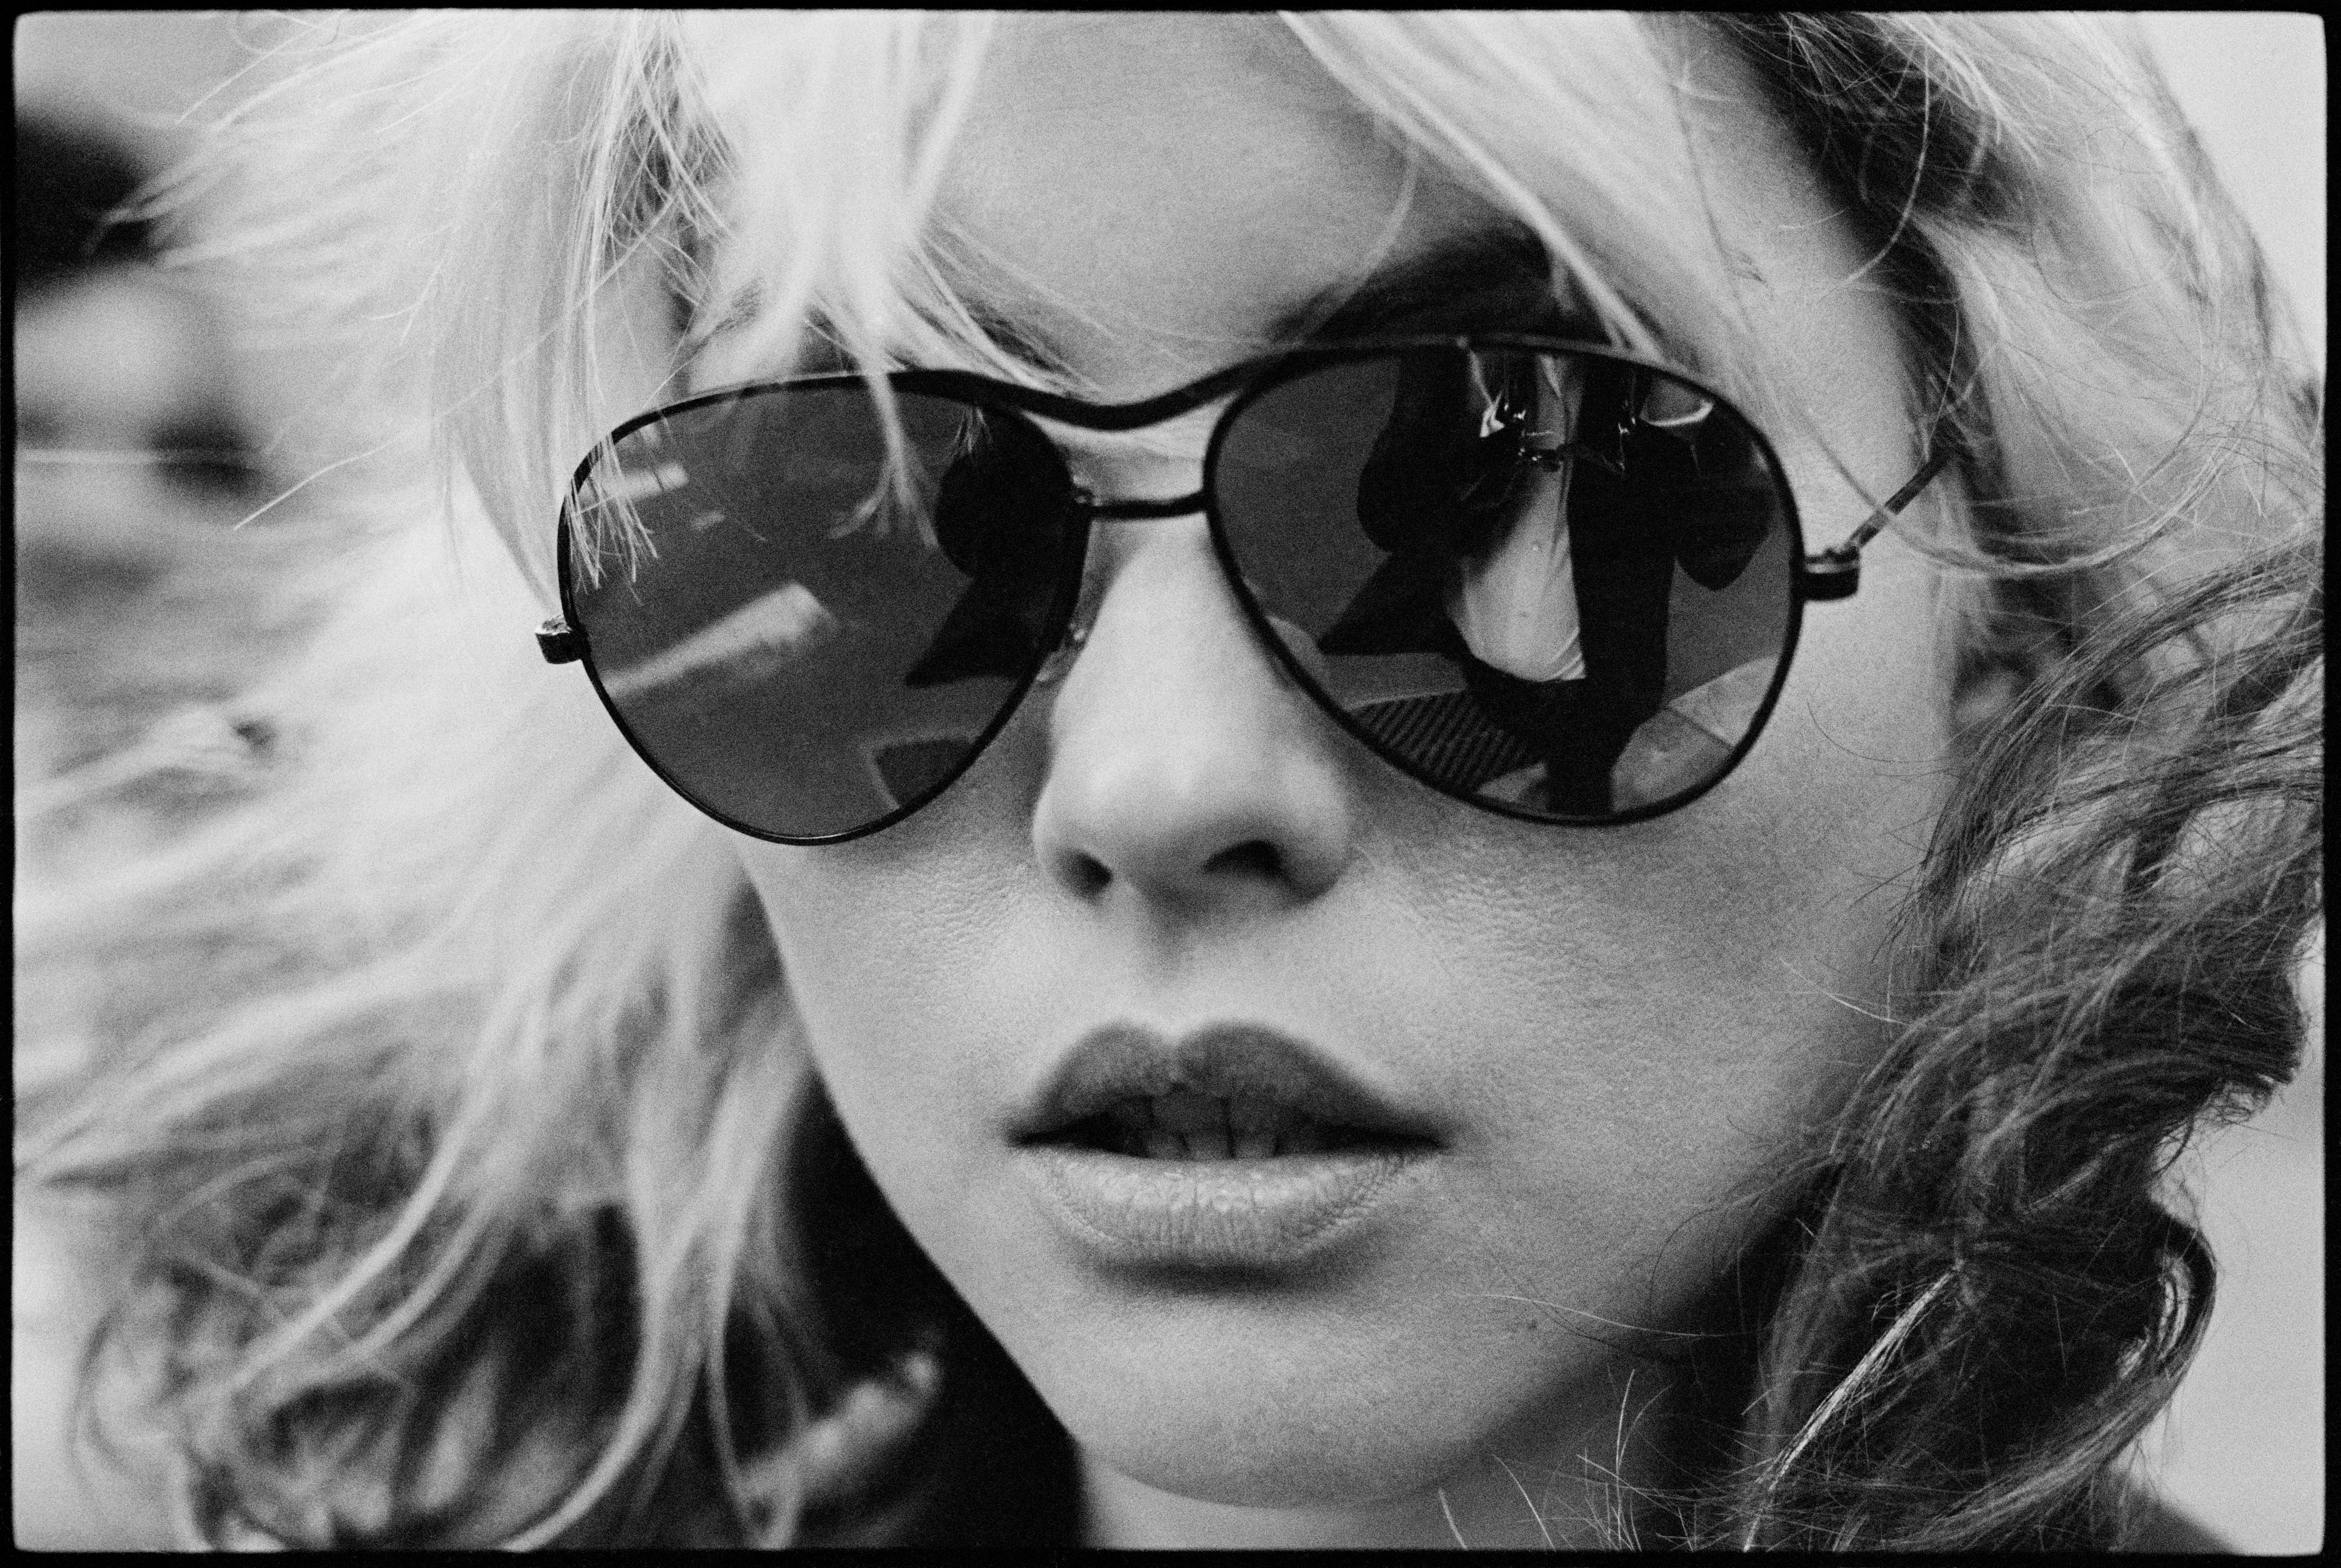 DEBBIE HARRY LEAD SINGER OF BLONDIE YOUNG IN STRIPED HALTER TOP PUBLICITY PHOTO